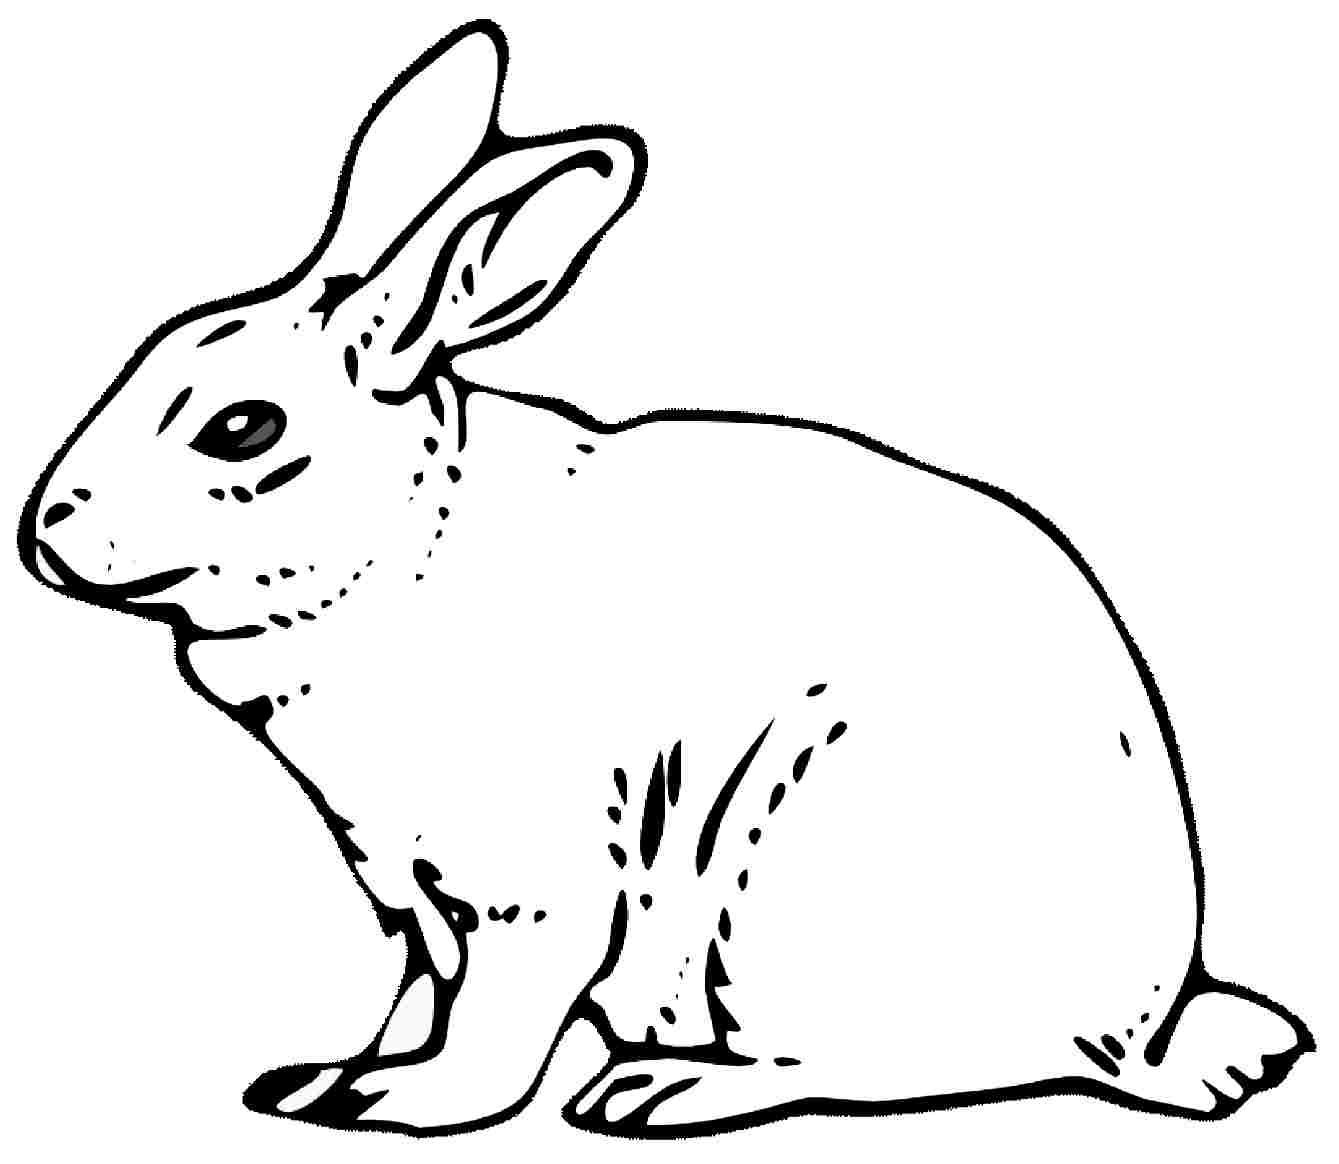 Rabit Drawing at GetDrawings.com | Free for personal use ...